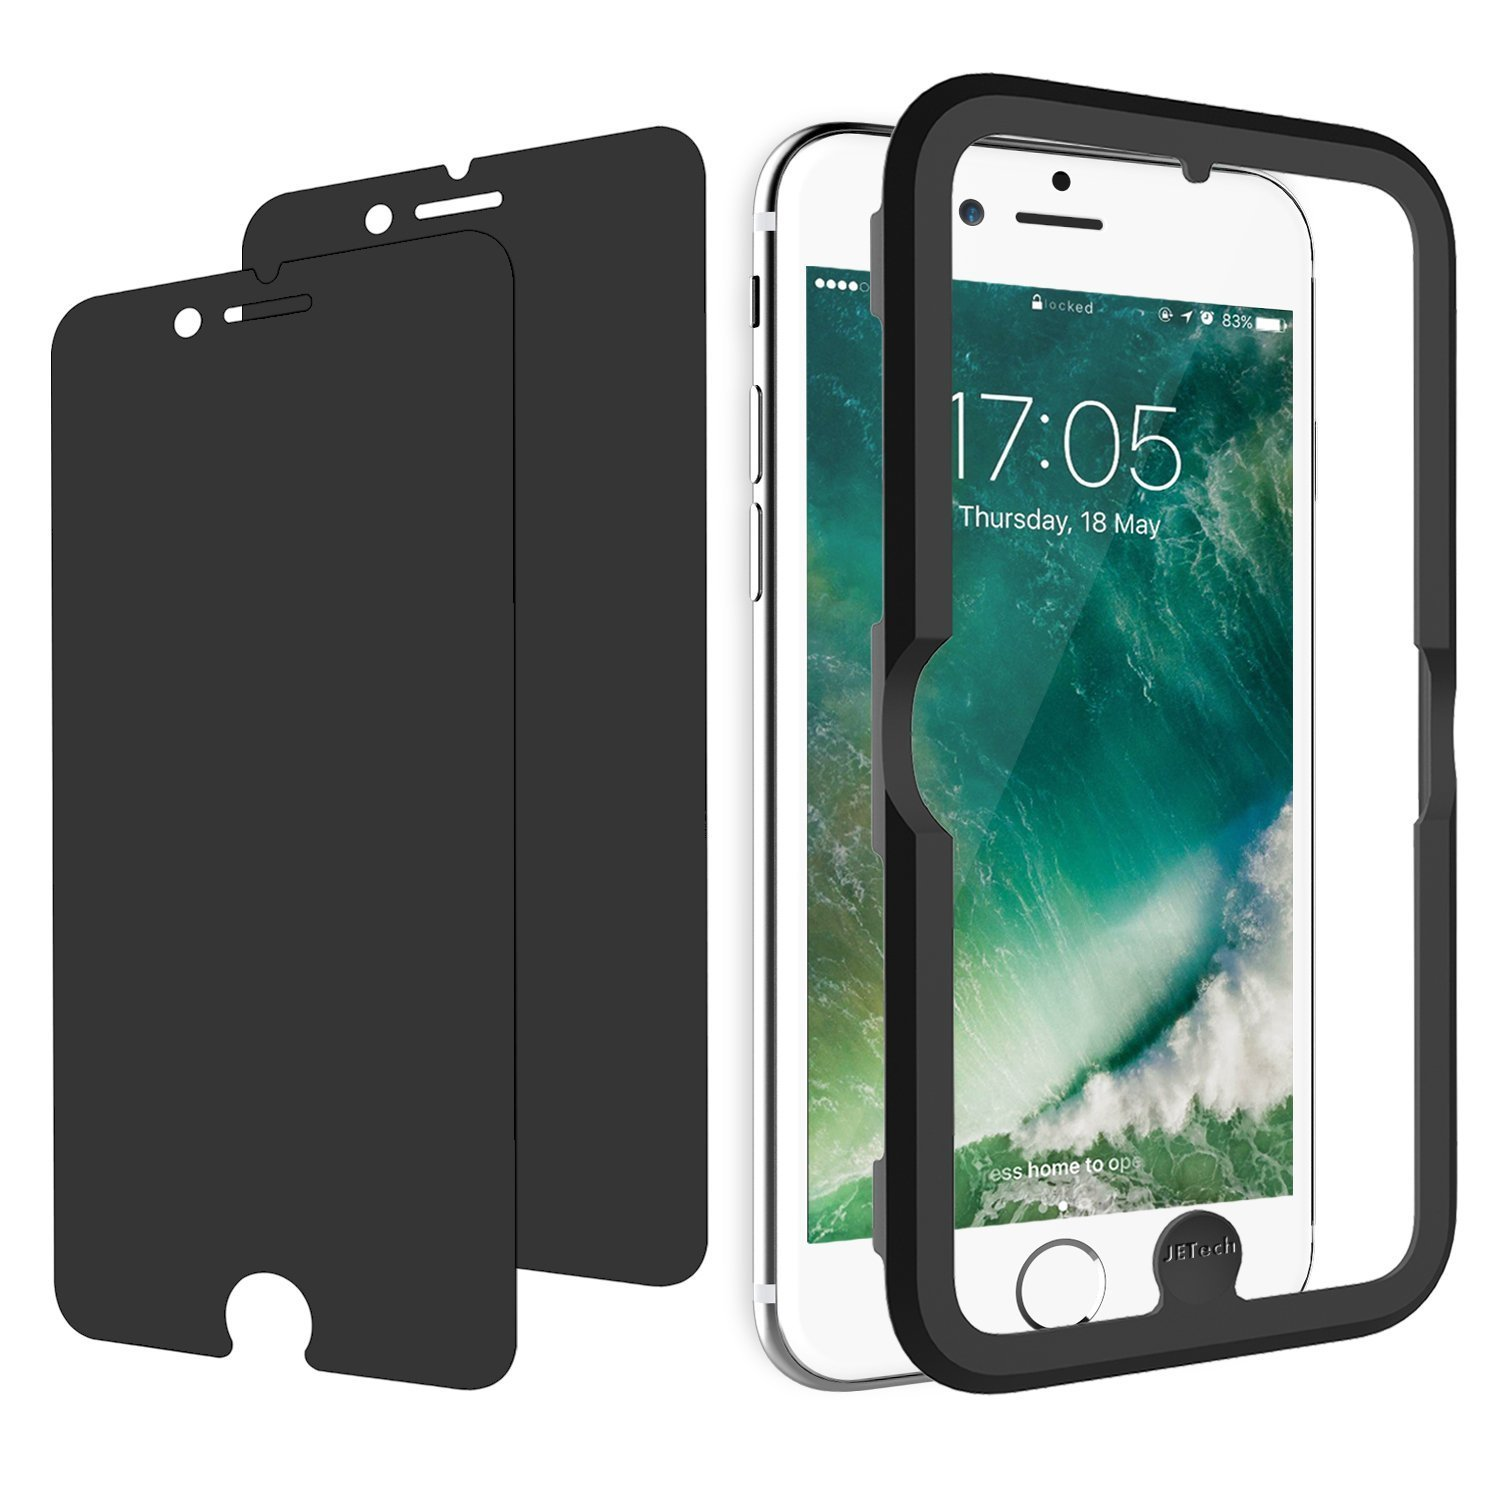 JETech Privacy Screen Protector for Apple iPhone 8 Plus, iPhone 7 Plus,  iPhone 6s Plus, and iPhone 6 Plus, 5 5-Inch, Anti-Spy Tempered Glass Film,